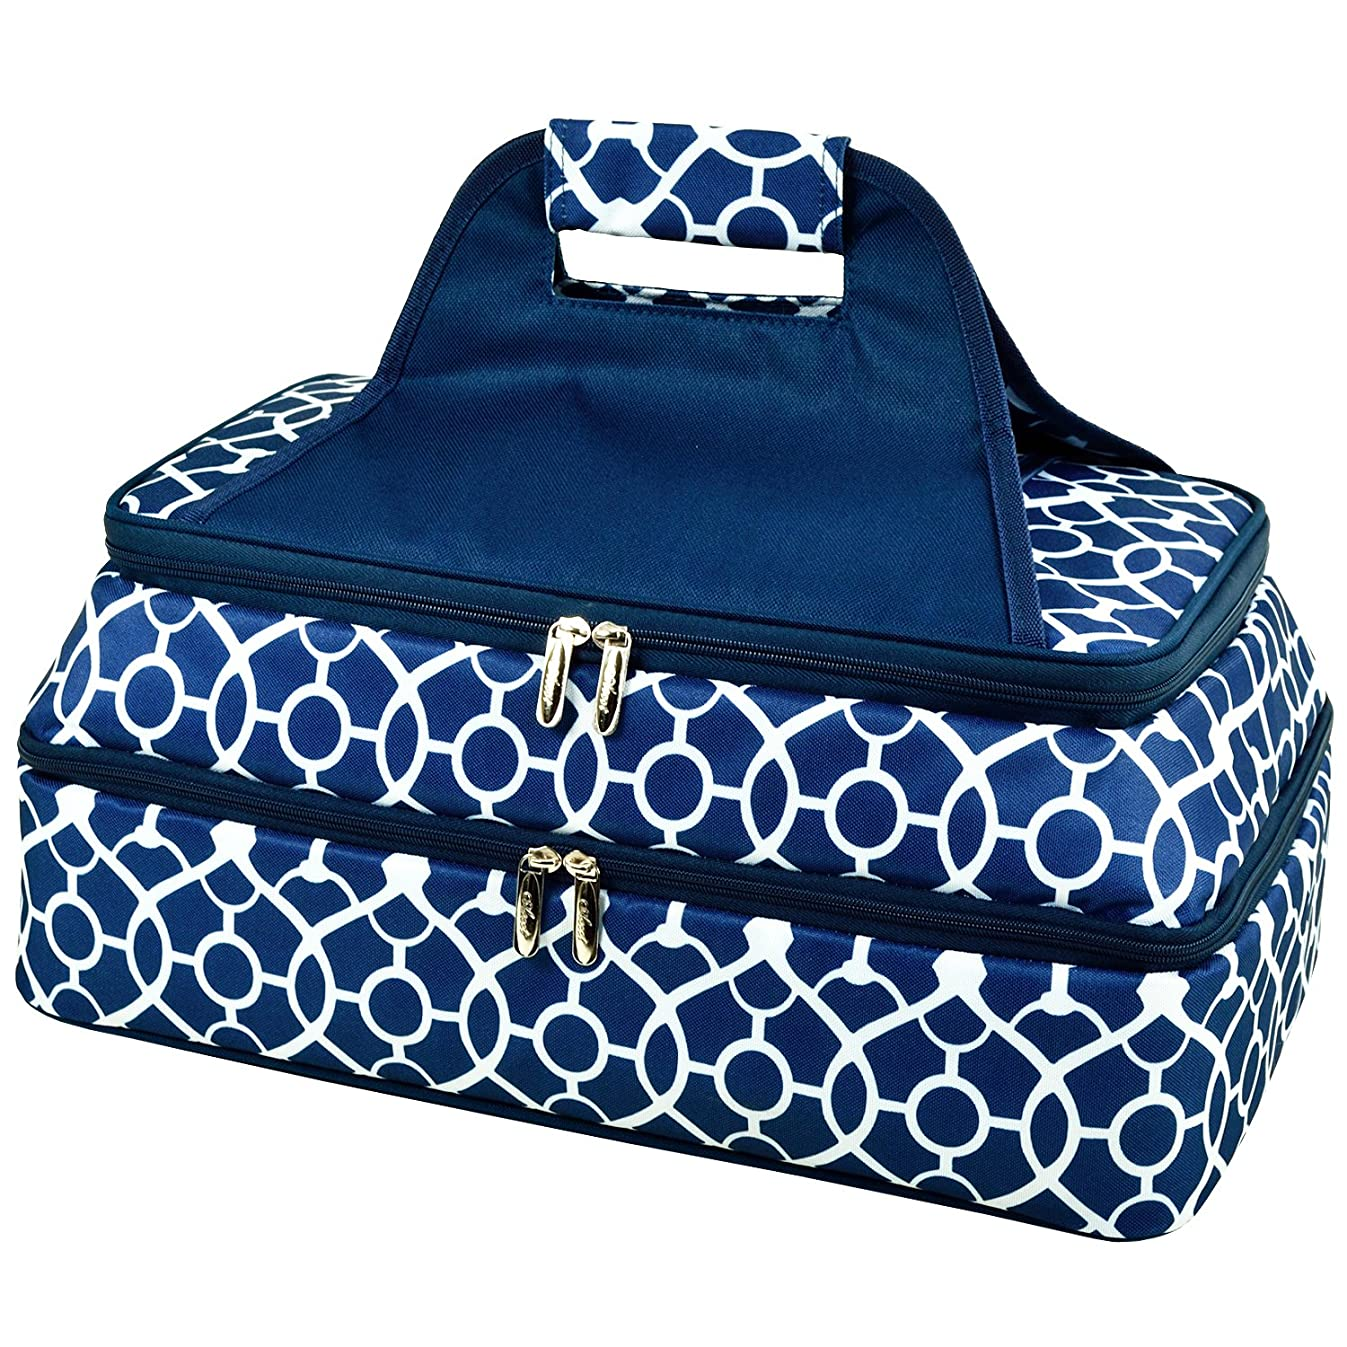 Picnic at Ascot - Two Layer - Hot/Cold Thermal Food and Casserole Carrier (Trellis Blue)